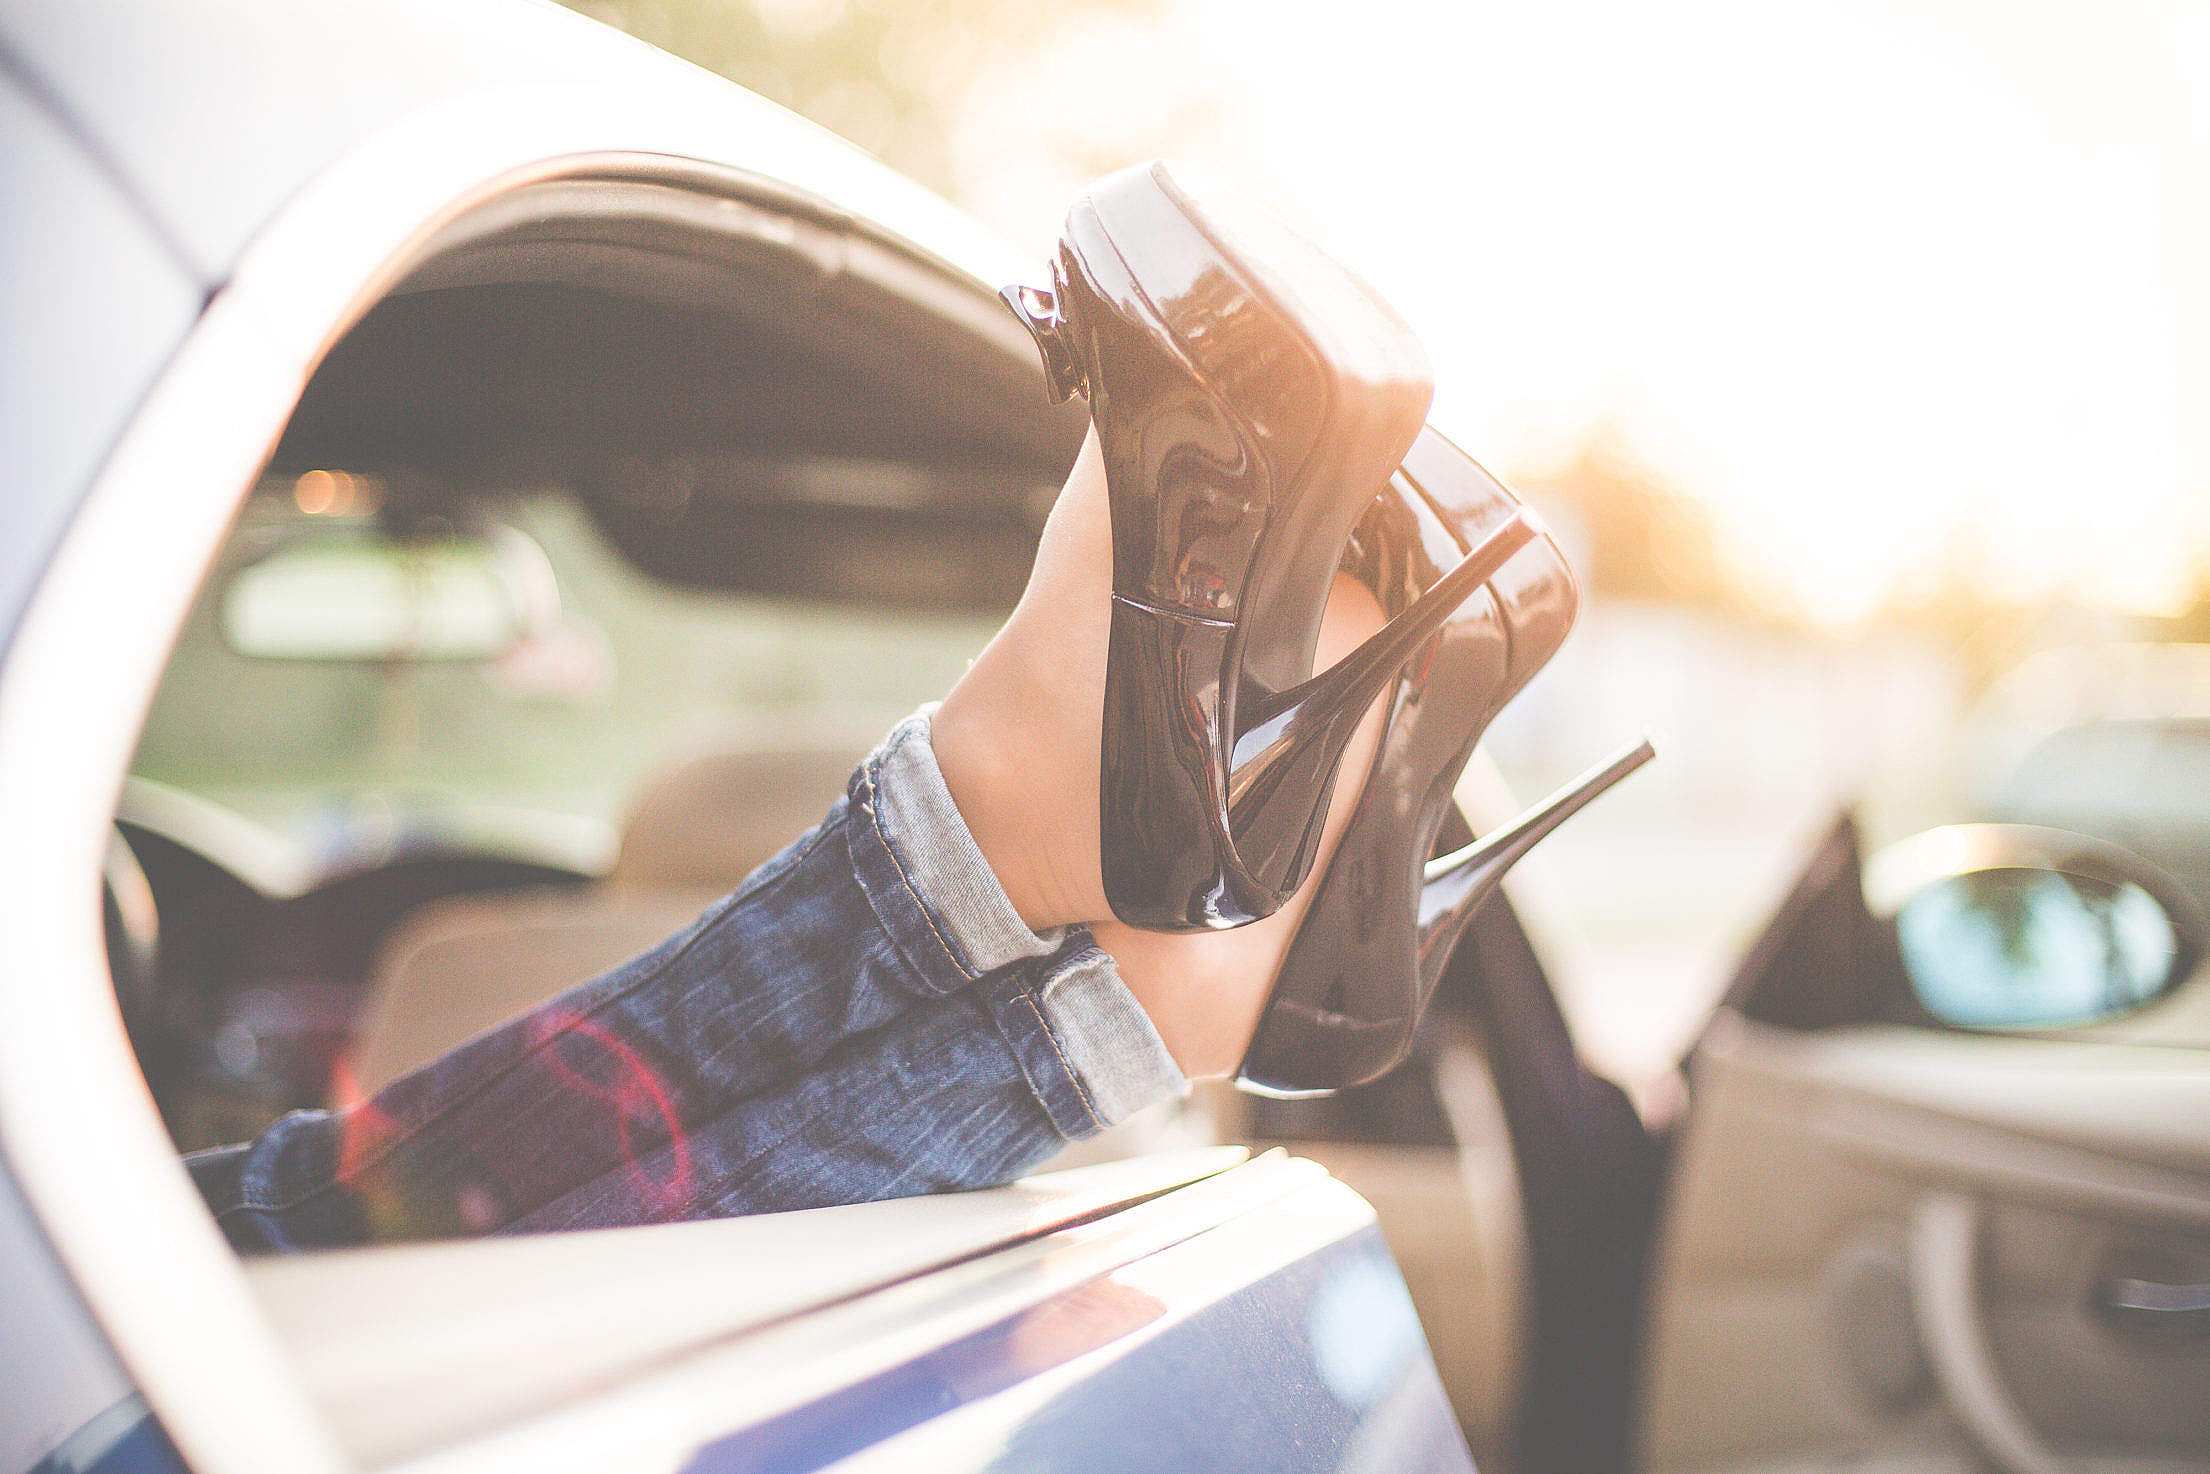 Sexy Woman Legs on High Heels Out of Car Windows Free Stock Photo